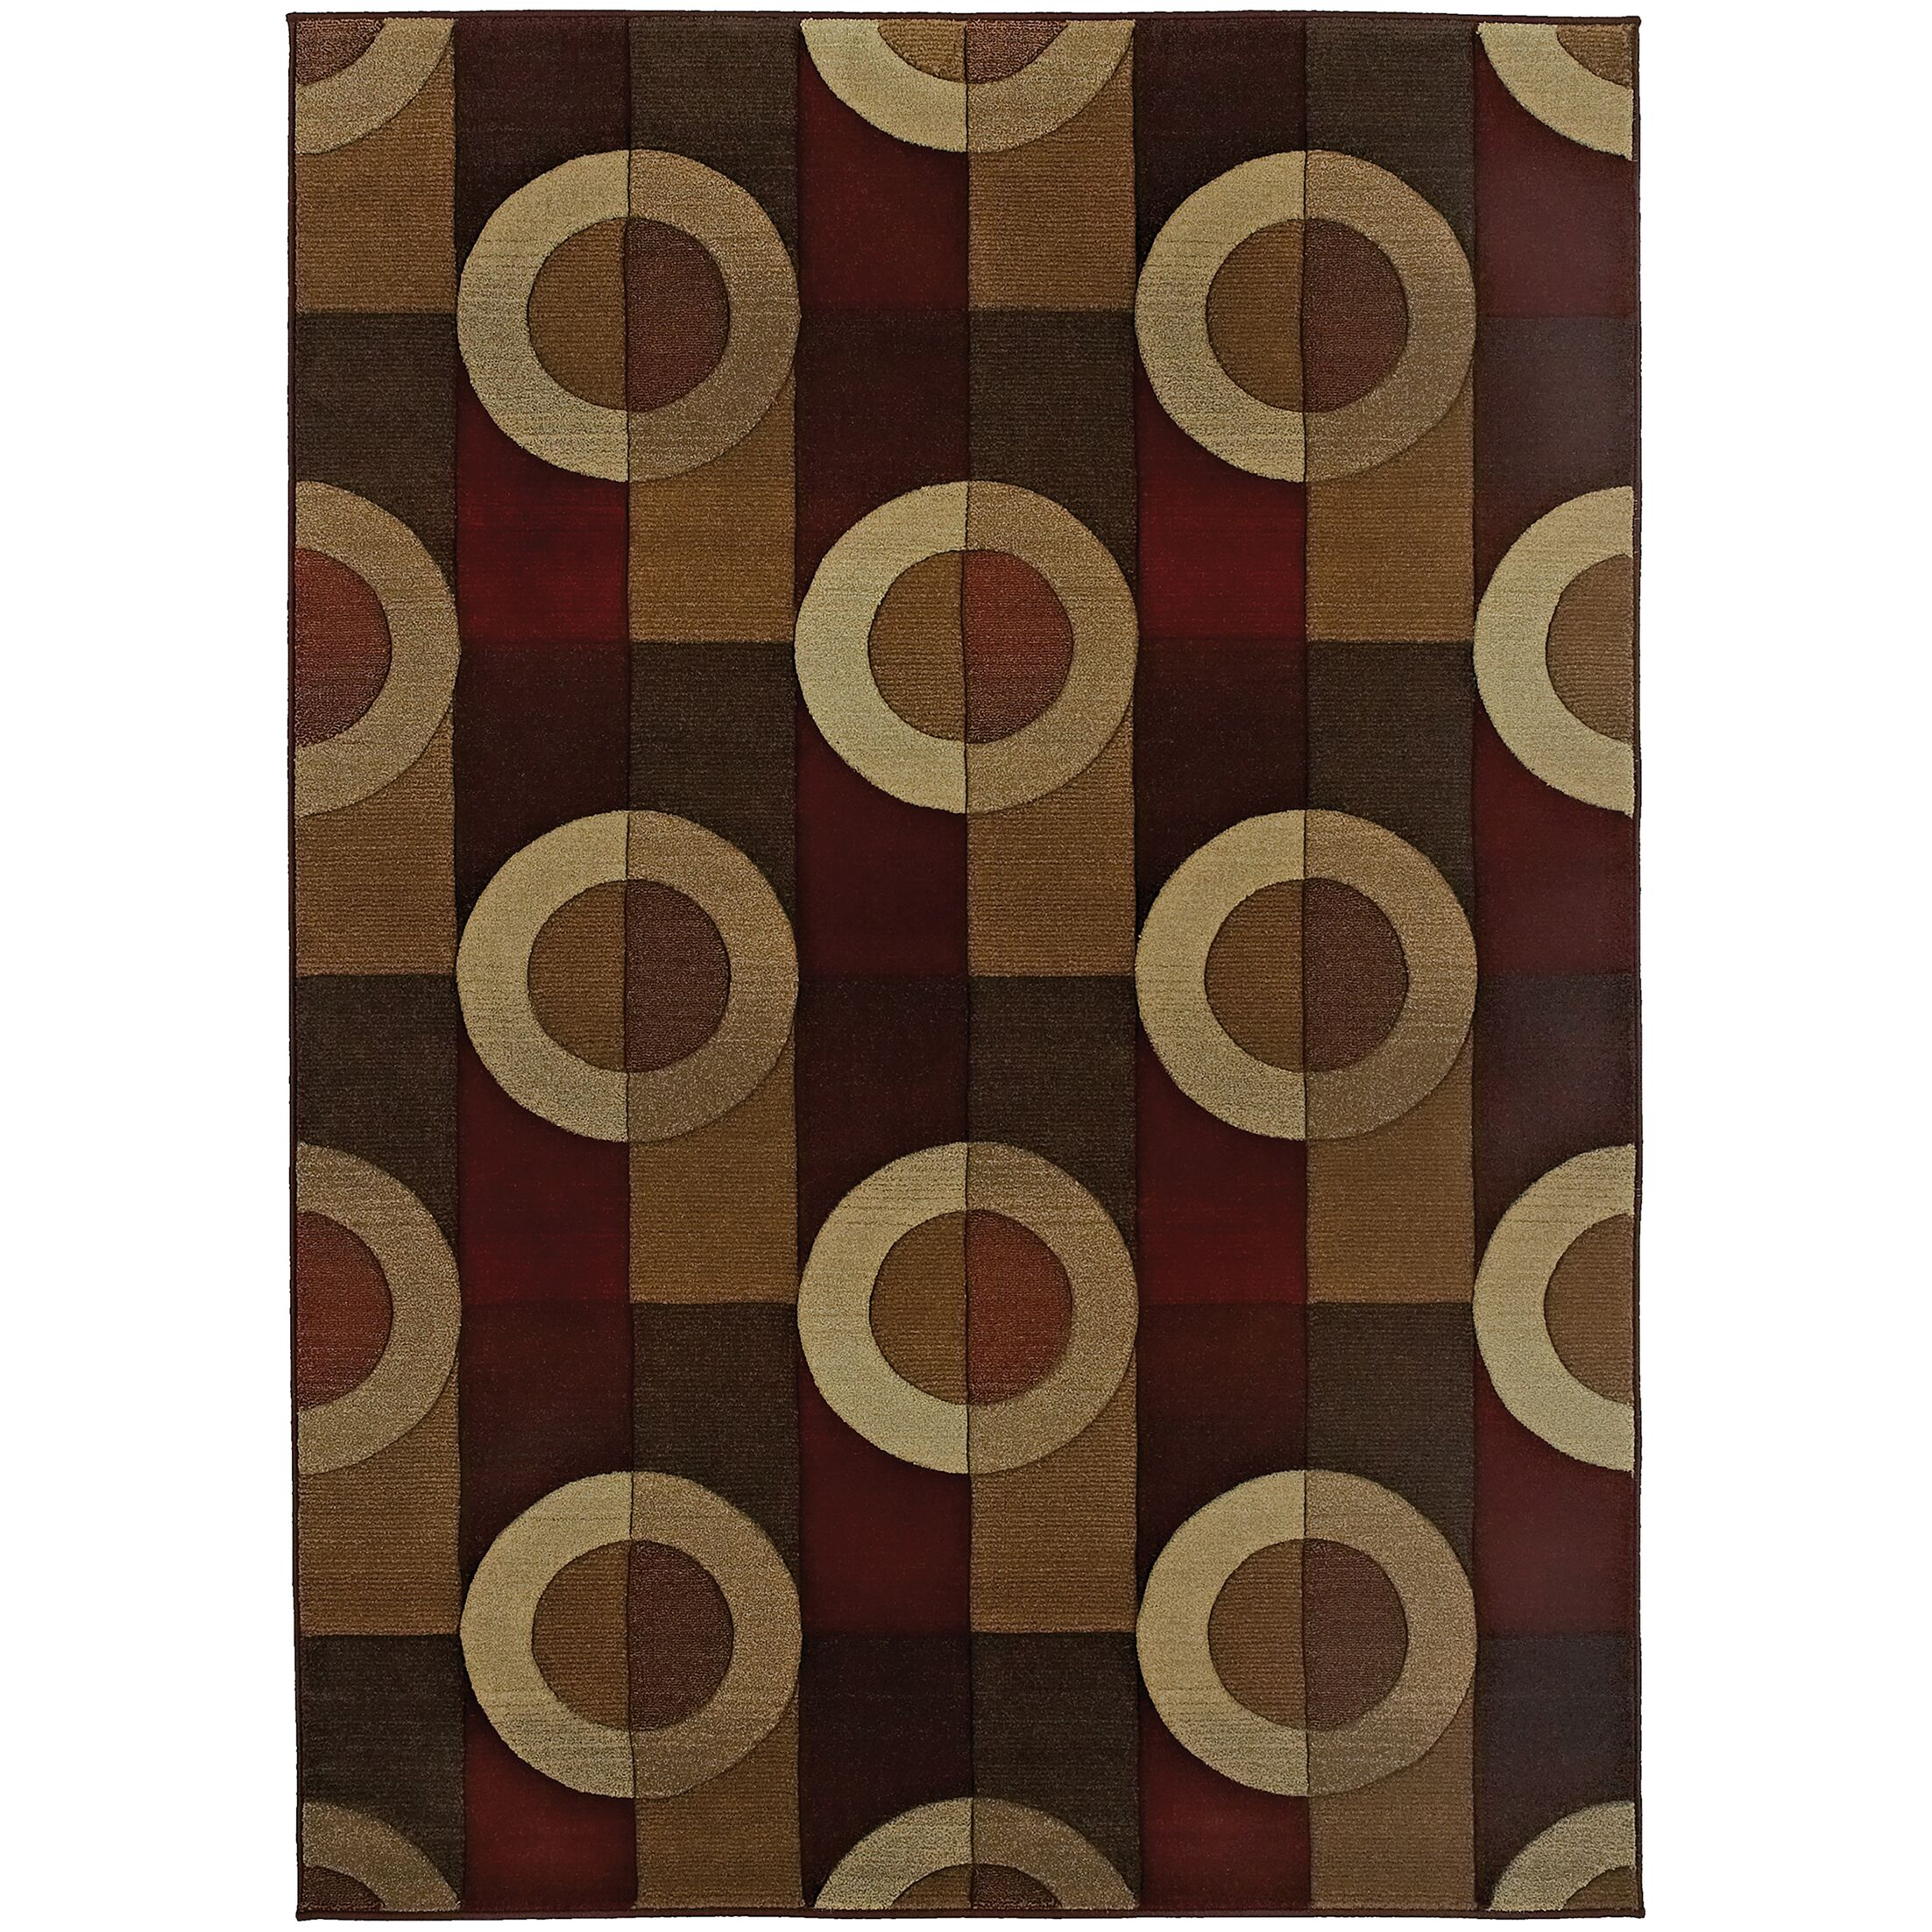 Meliton Geometric Brown/Beige Area Rug